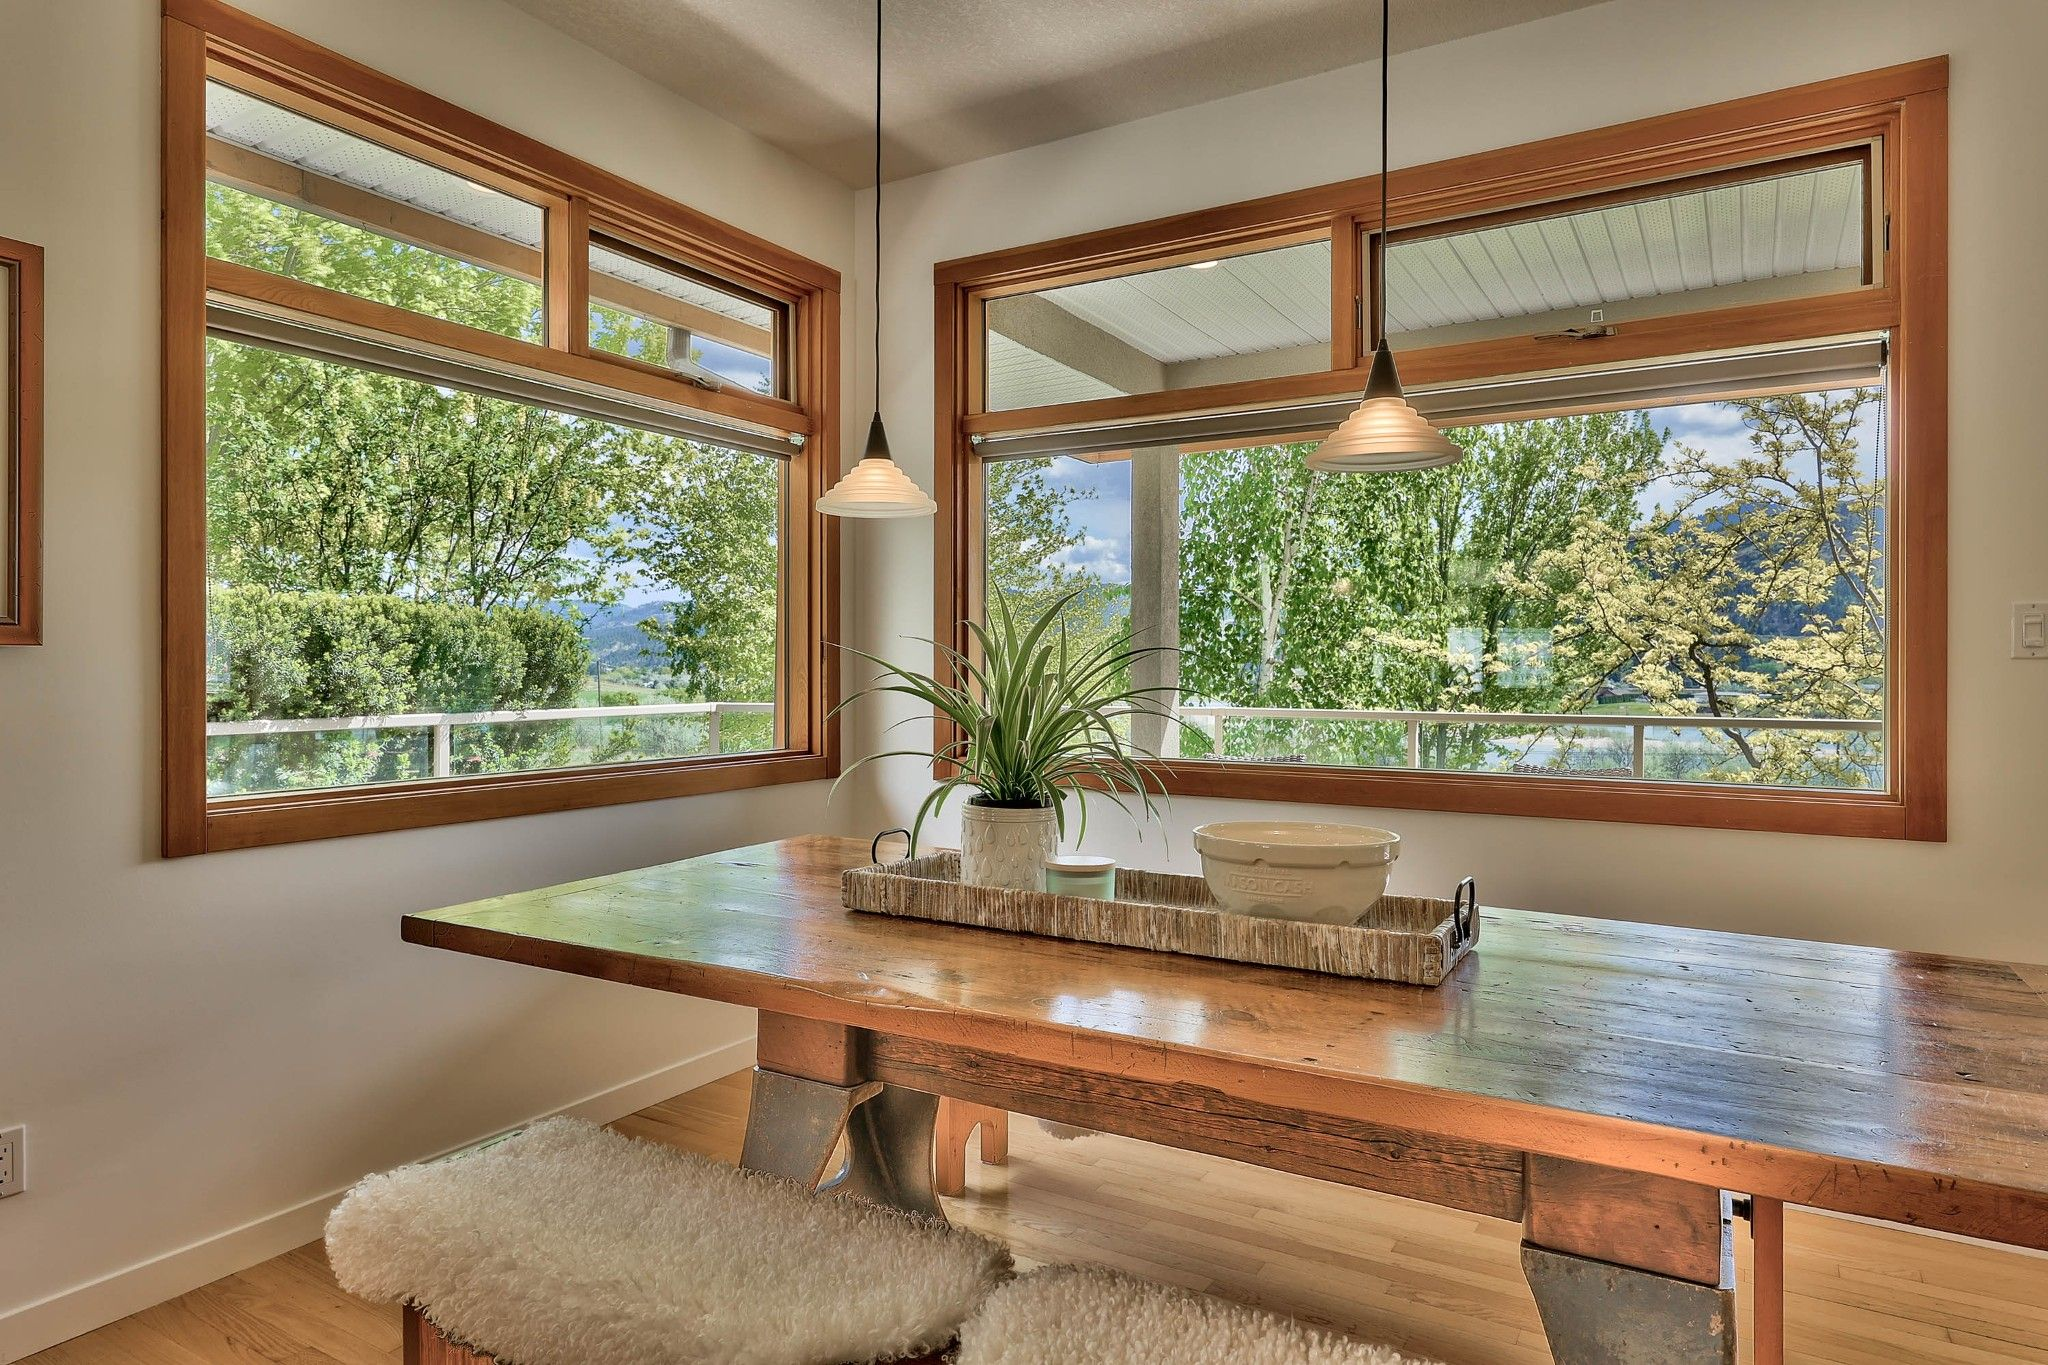 Photo 10: Photos: 3299 E Shuswap Road in Kamloops: South Thompson Valley House for sale : MLS®# 162162